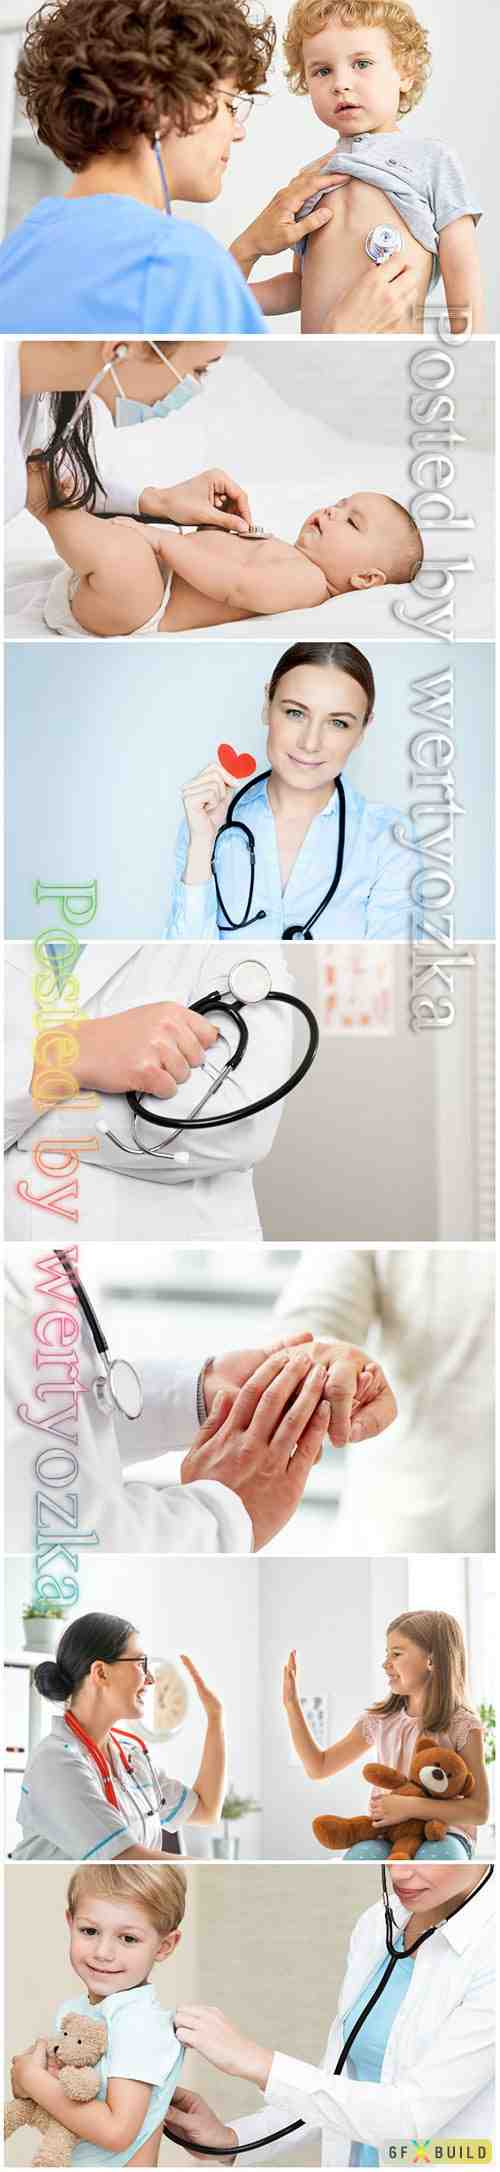 Conceptual medical, doctor beautiful stock photo